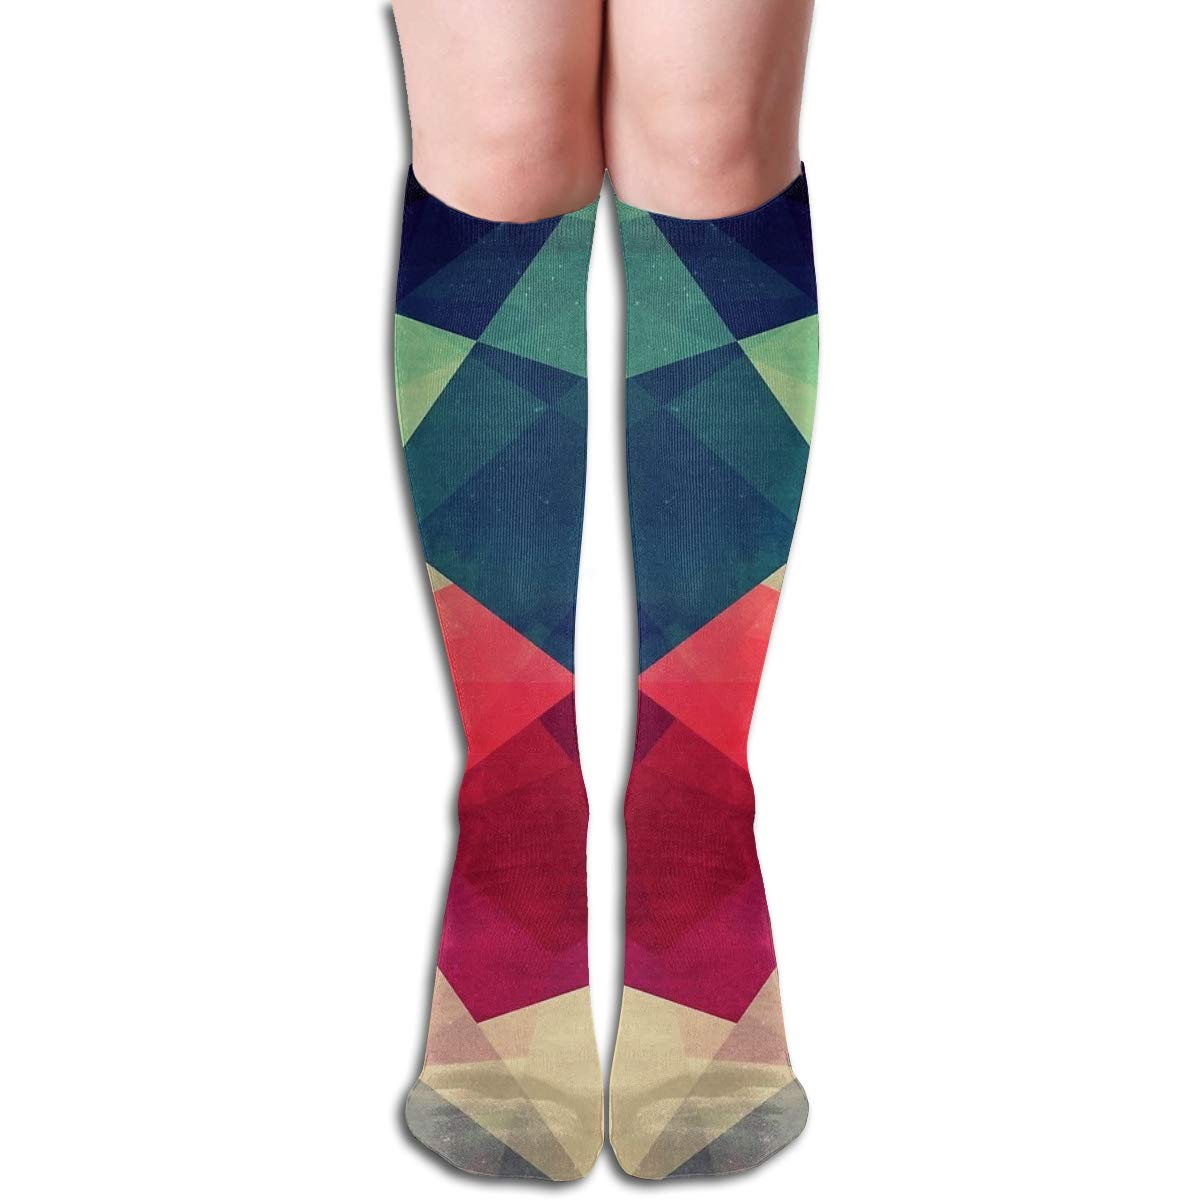 Meet Me HalfwayFashion Athletic Socks Knee High Socks For Men/&Women All Sport Holiday